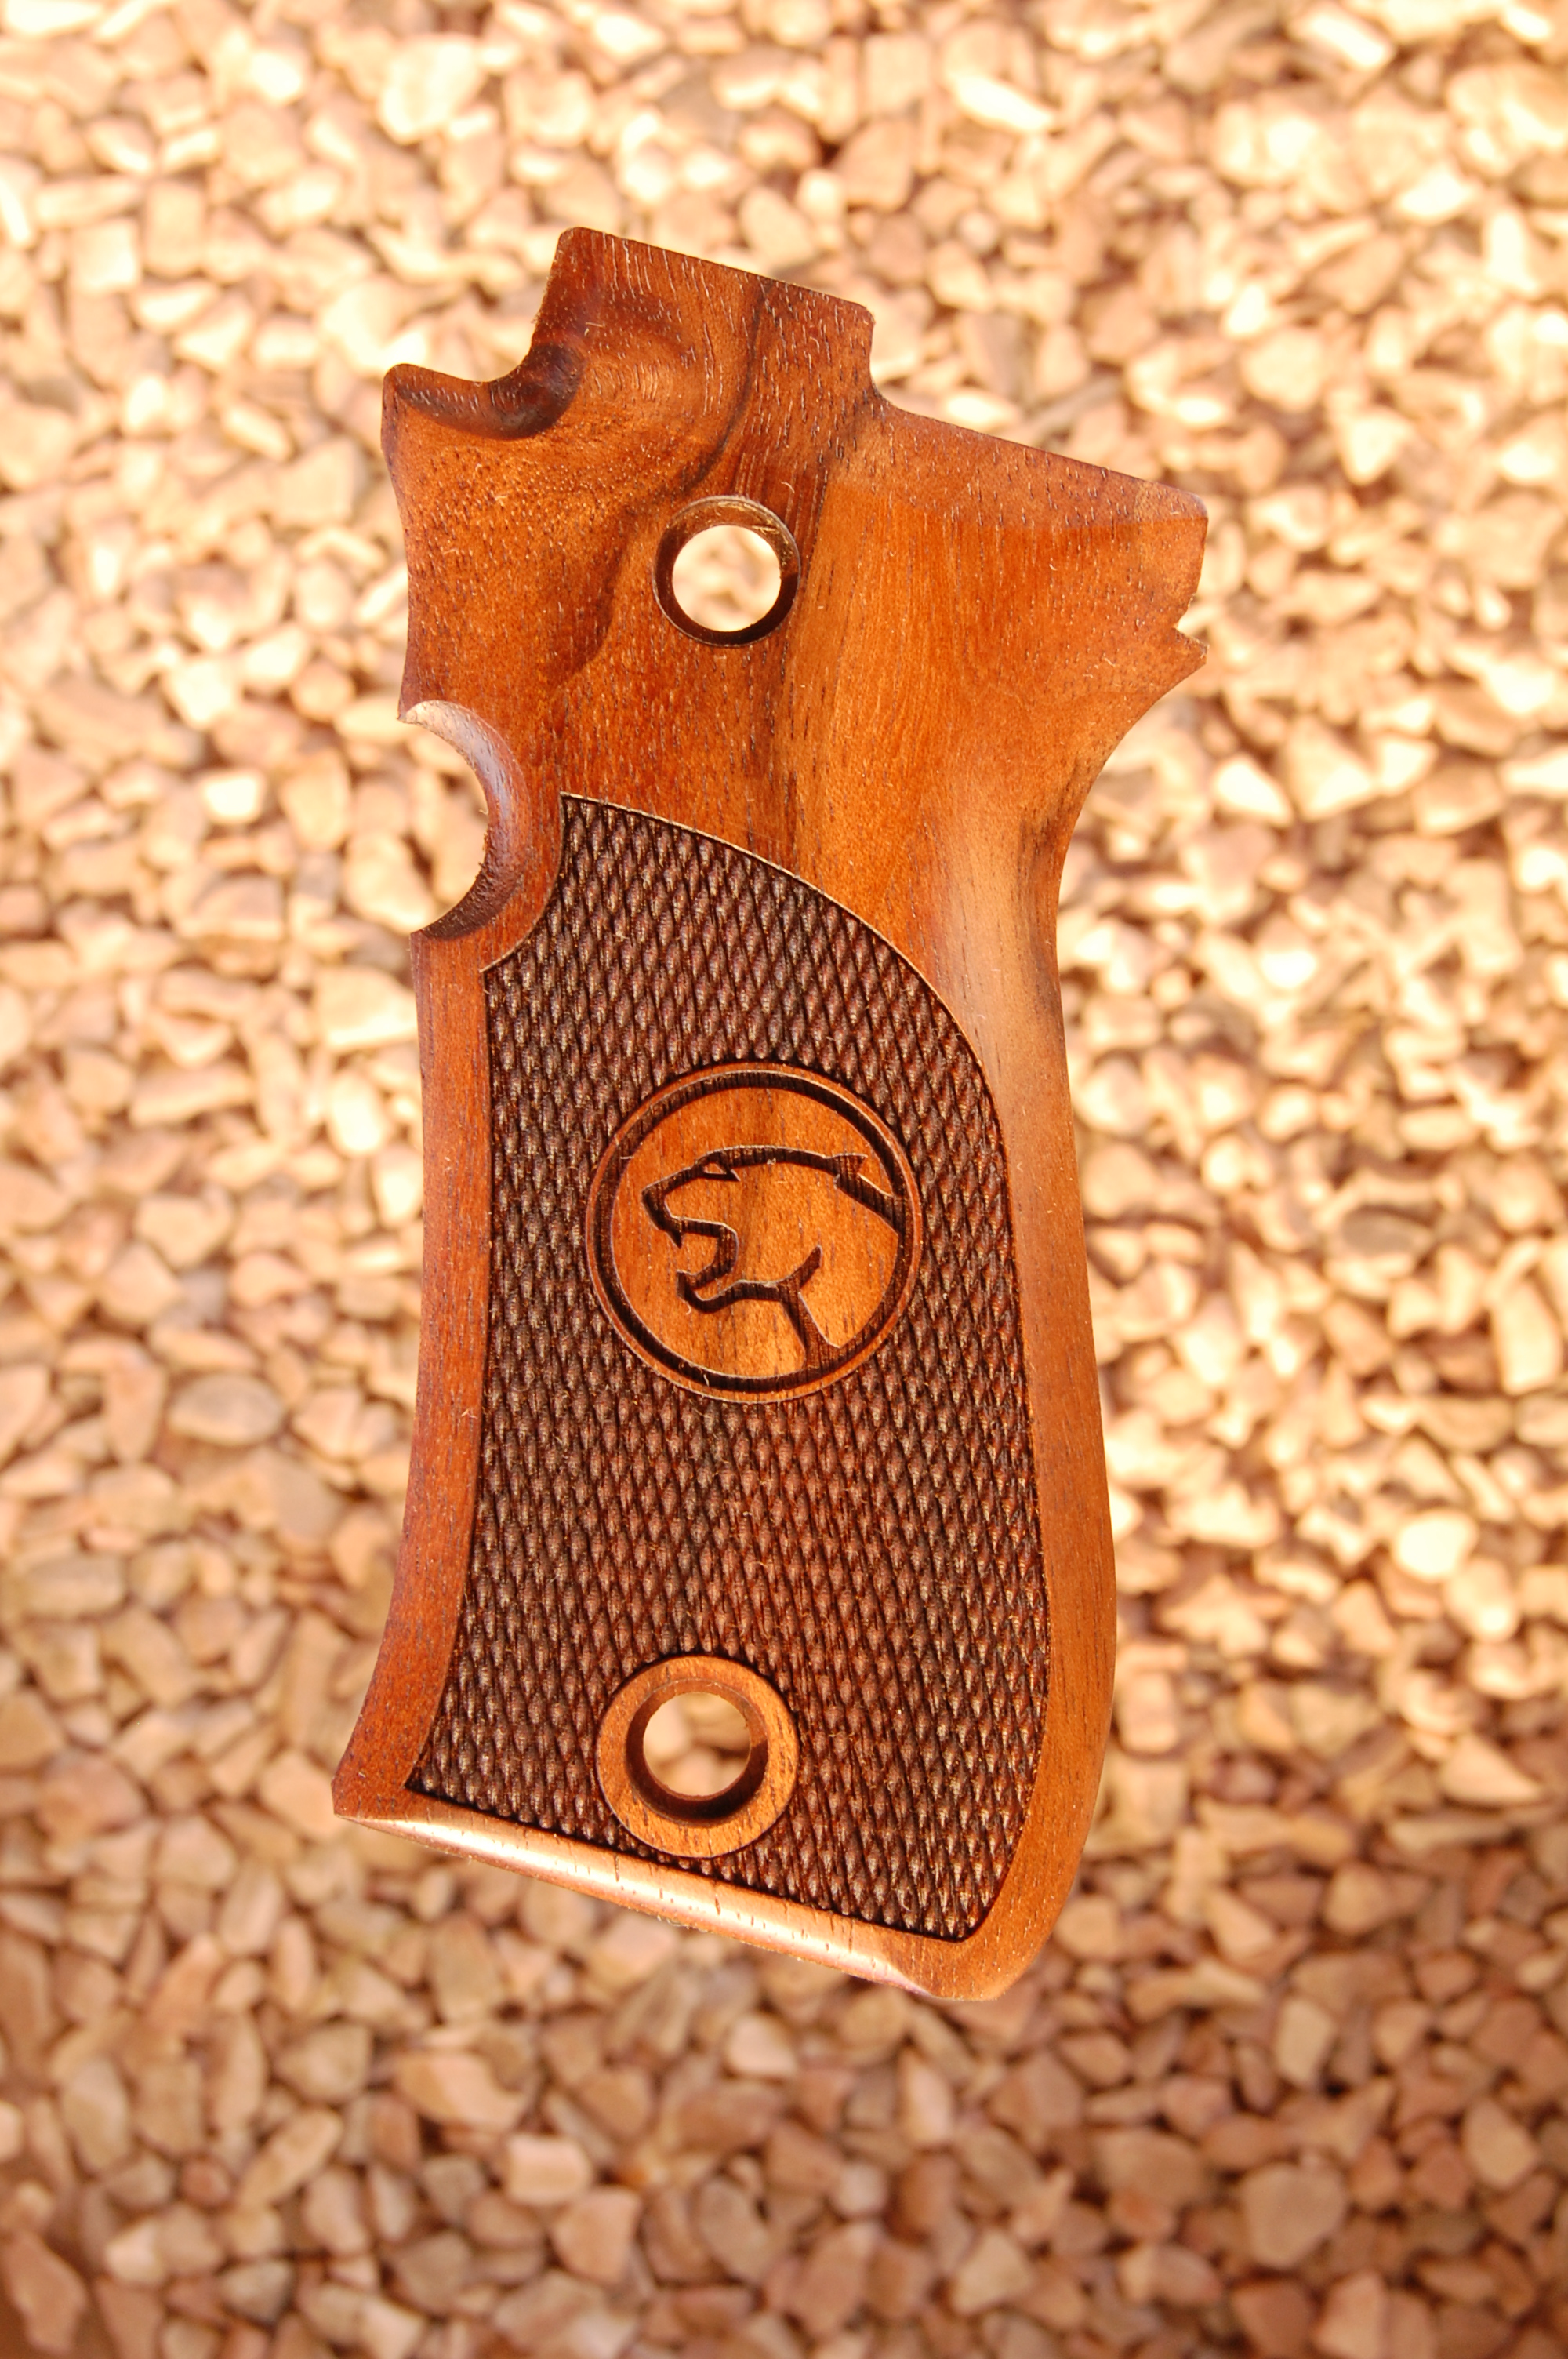 BERETTA 81 grips (checkered+cougar) - full size